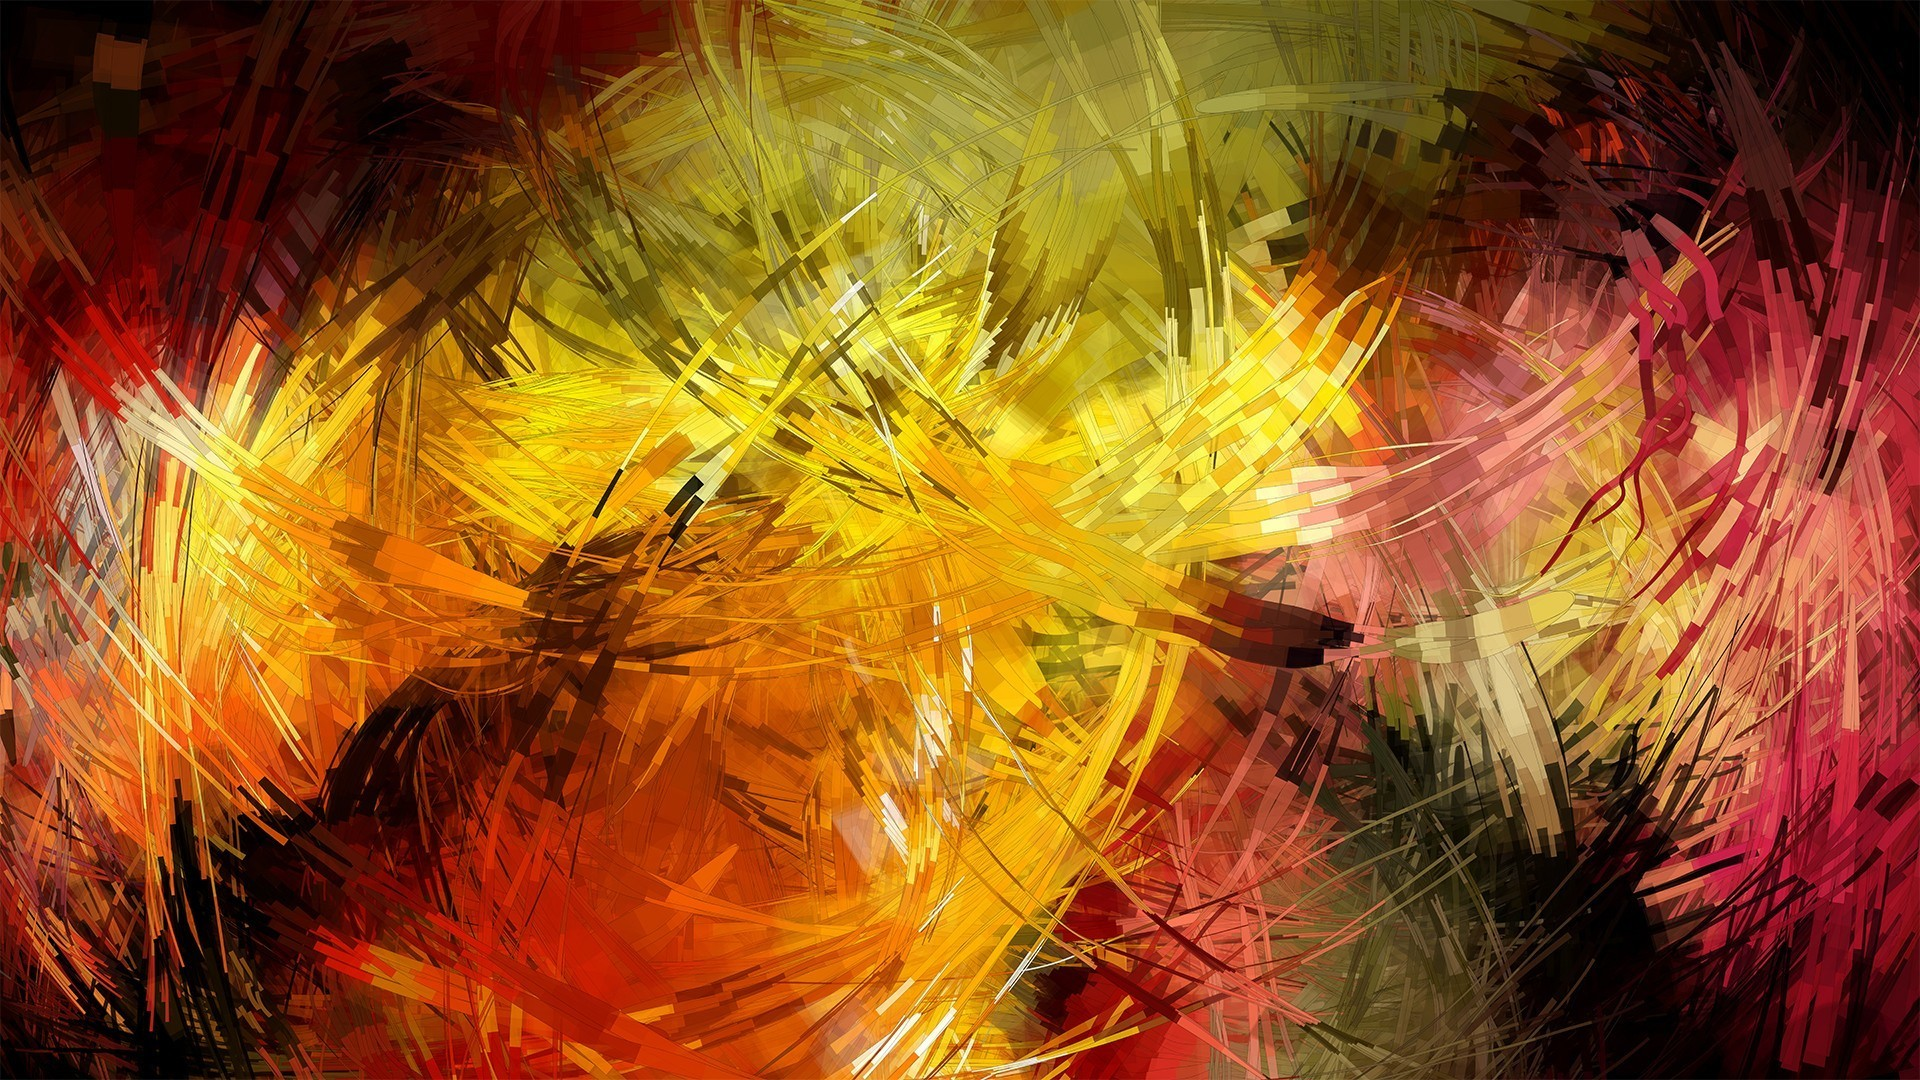 Graphic art backgrounds 63 images 1920x1080 abstract graphic art background hd hd wallpapers download free windows wallpapers amazing colourful 4k picture voltagebd Gallery